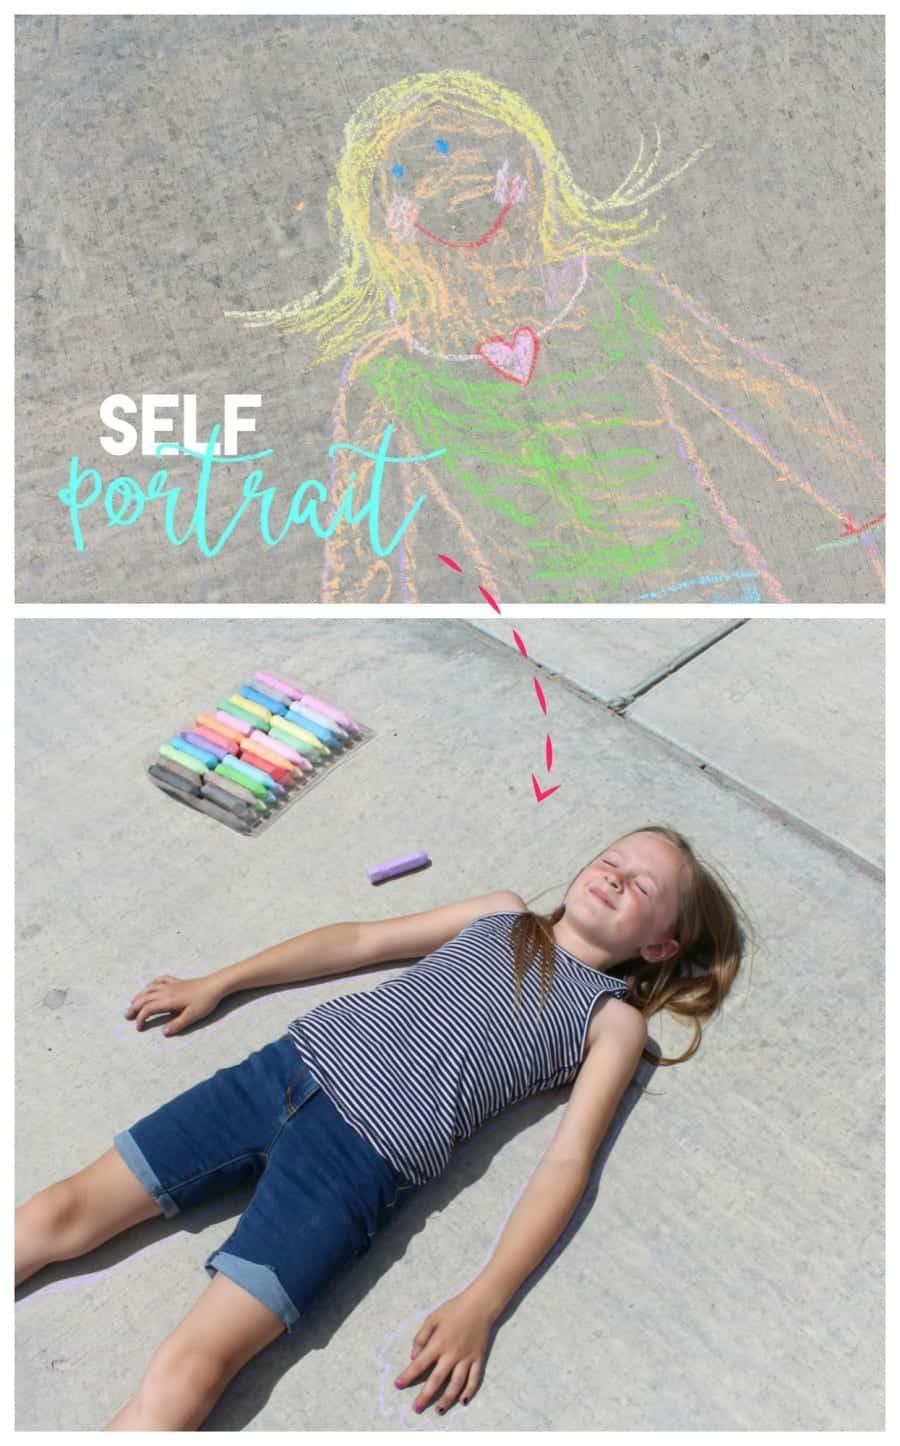 Self Portrait Sidewalk Chalk